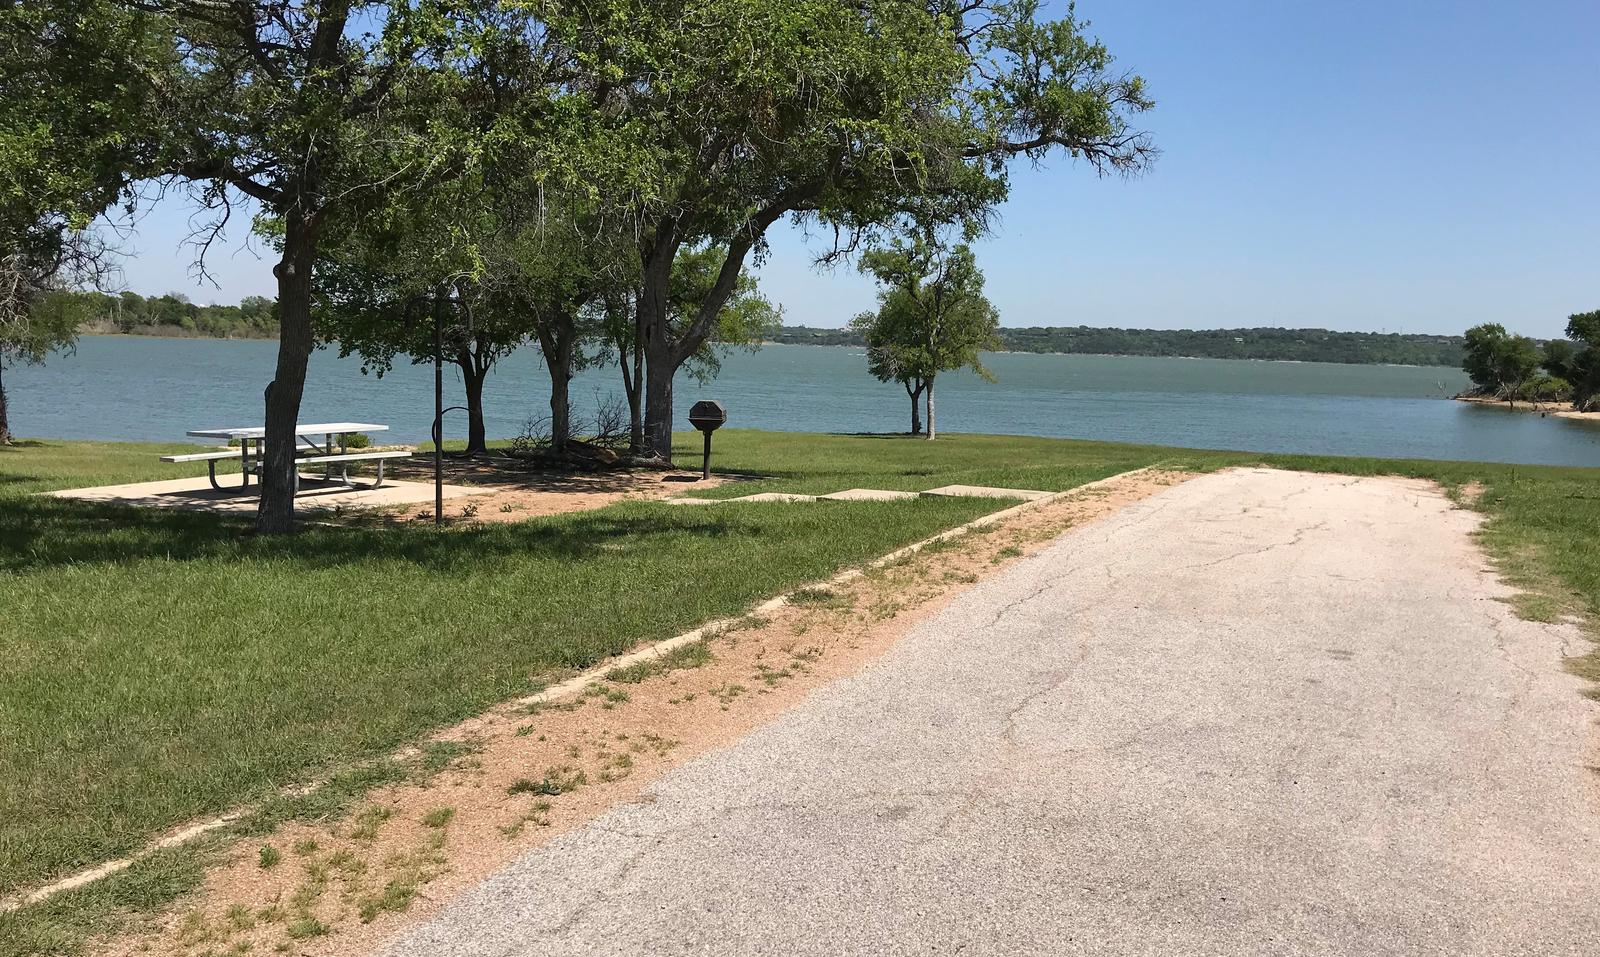 RV site with picnic table, grill, fire ring, and Waco Lake in the background